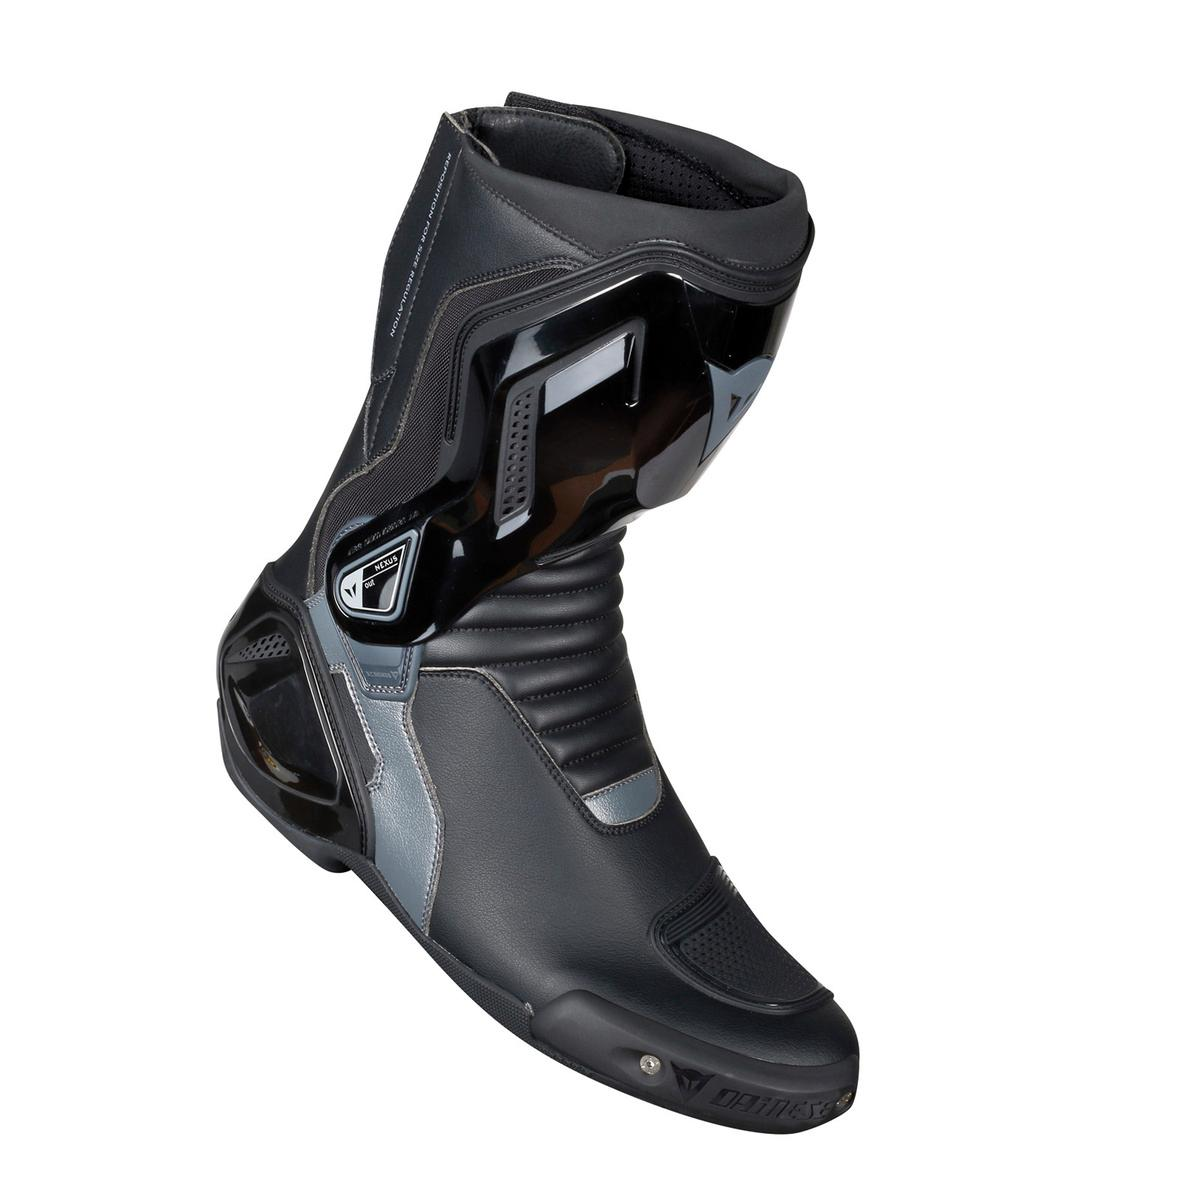 NEXUS BOOTS Dainese Black/Anthracite